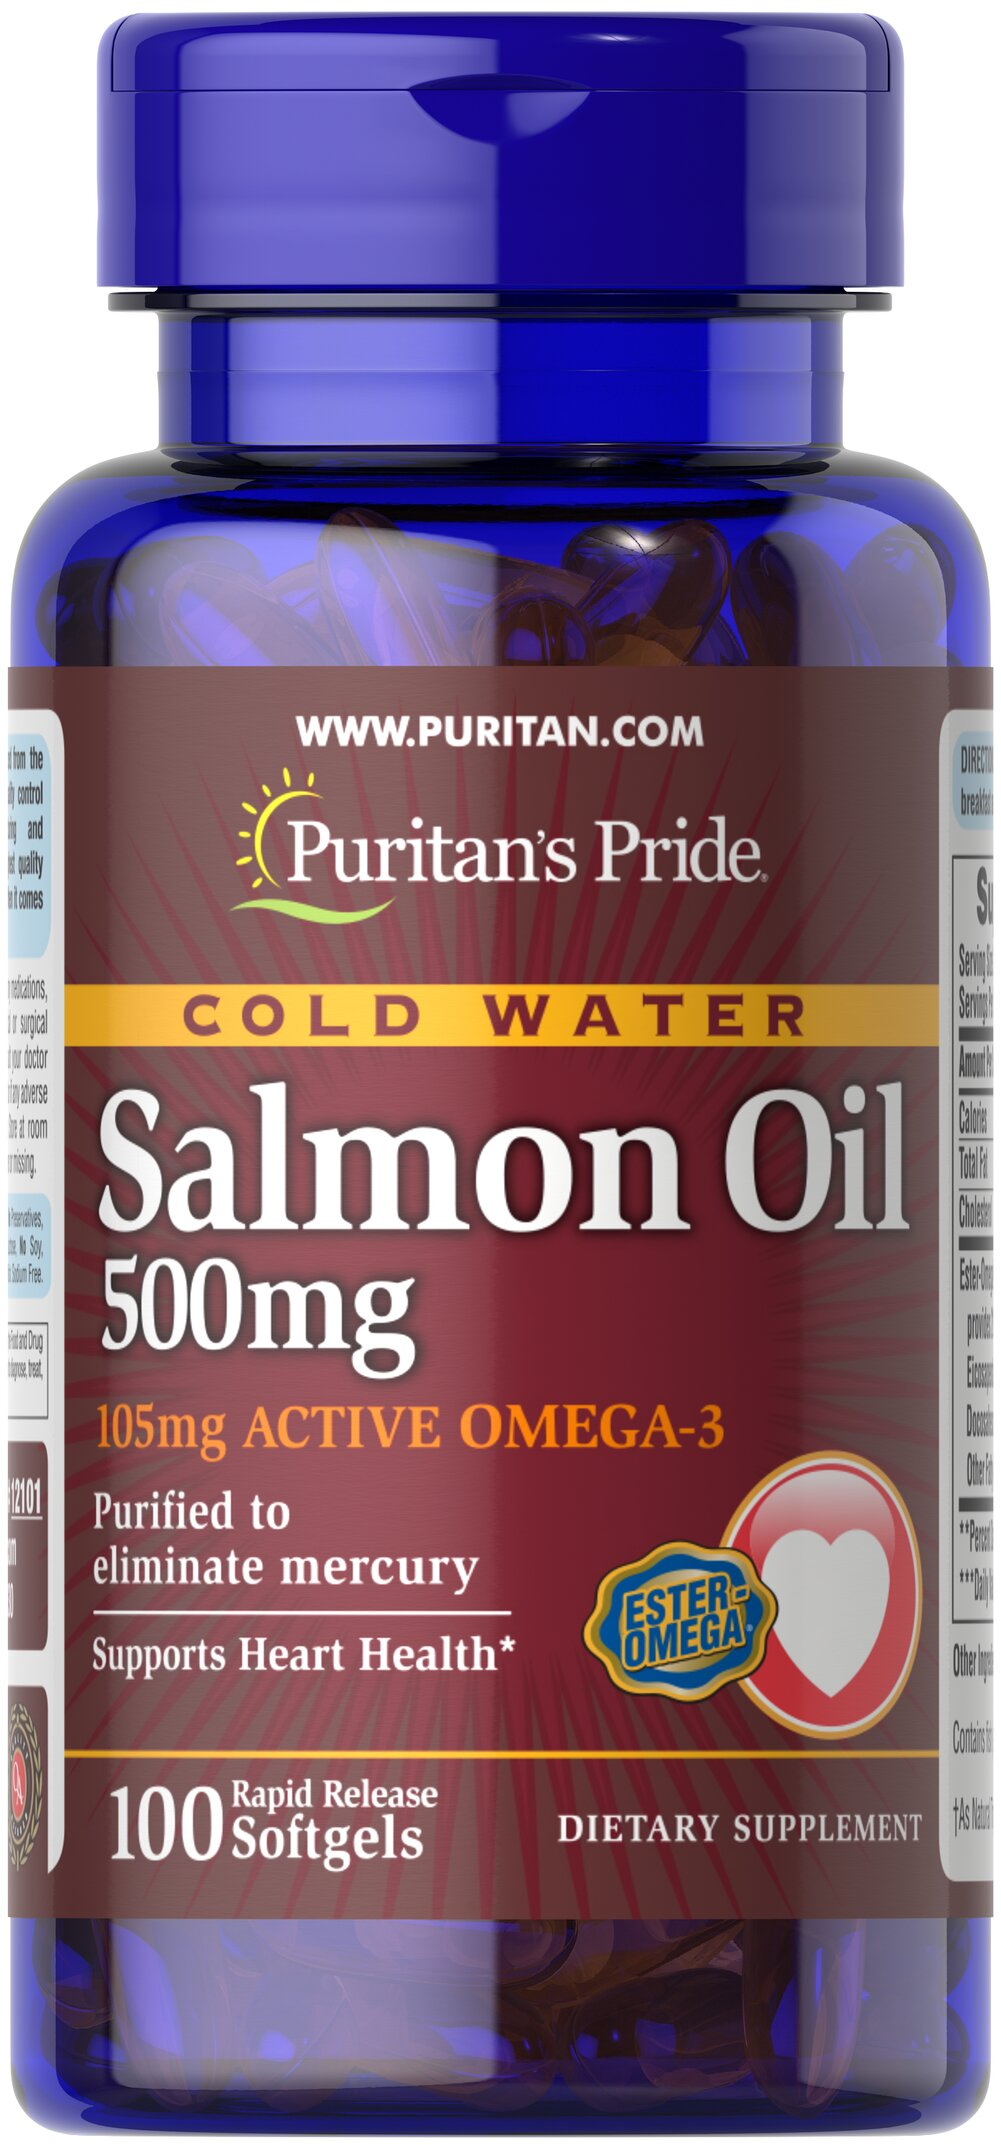 Omega-3 Salmon Oil 500 mg <p><strong>Purified to Eliminate Mercury</strong></p><p>Puritan's Pride Salmon Oil contains the finest Salmon Oil available. Take two softgels two times a day to gain the essential fatty acids your body needs for good health.** Salmon contains a high concentration of Omega-3 fatty acids that have been shown to help promote metabolic, circulatory and heart health.**</p> 100 Softgels 500 mg $10.29